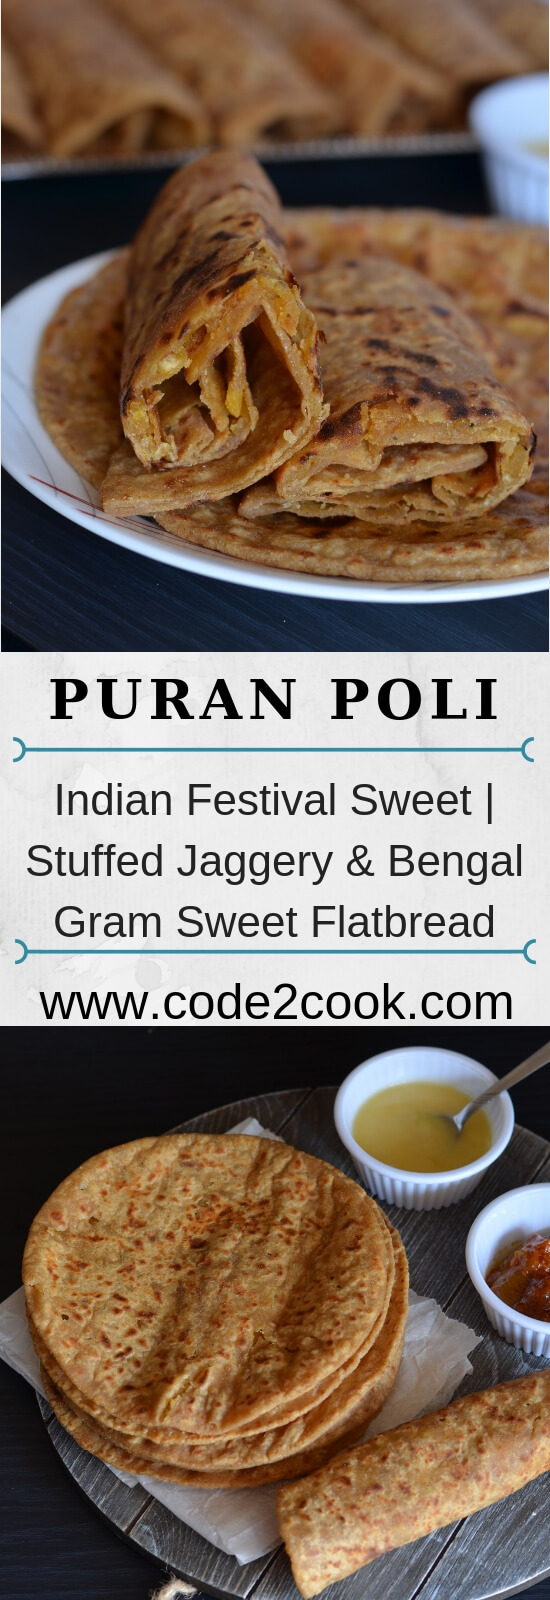 Puran Poli is a Maharashtrian lentil stuffed sweet flatbread made with whole wheat flour and chana dal (bengal gram) filling. It is prepared on festive occasions such as Ganesh Chaturthi, Holi, Diwali, Janmashtami, and Gudi Padwa.